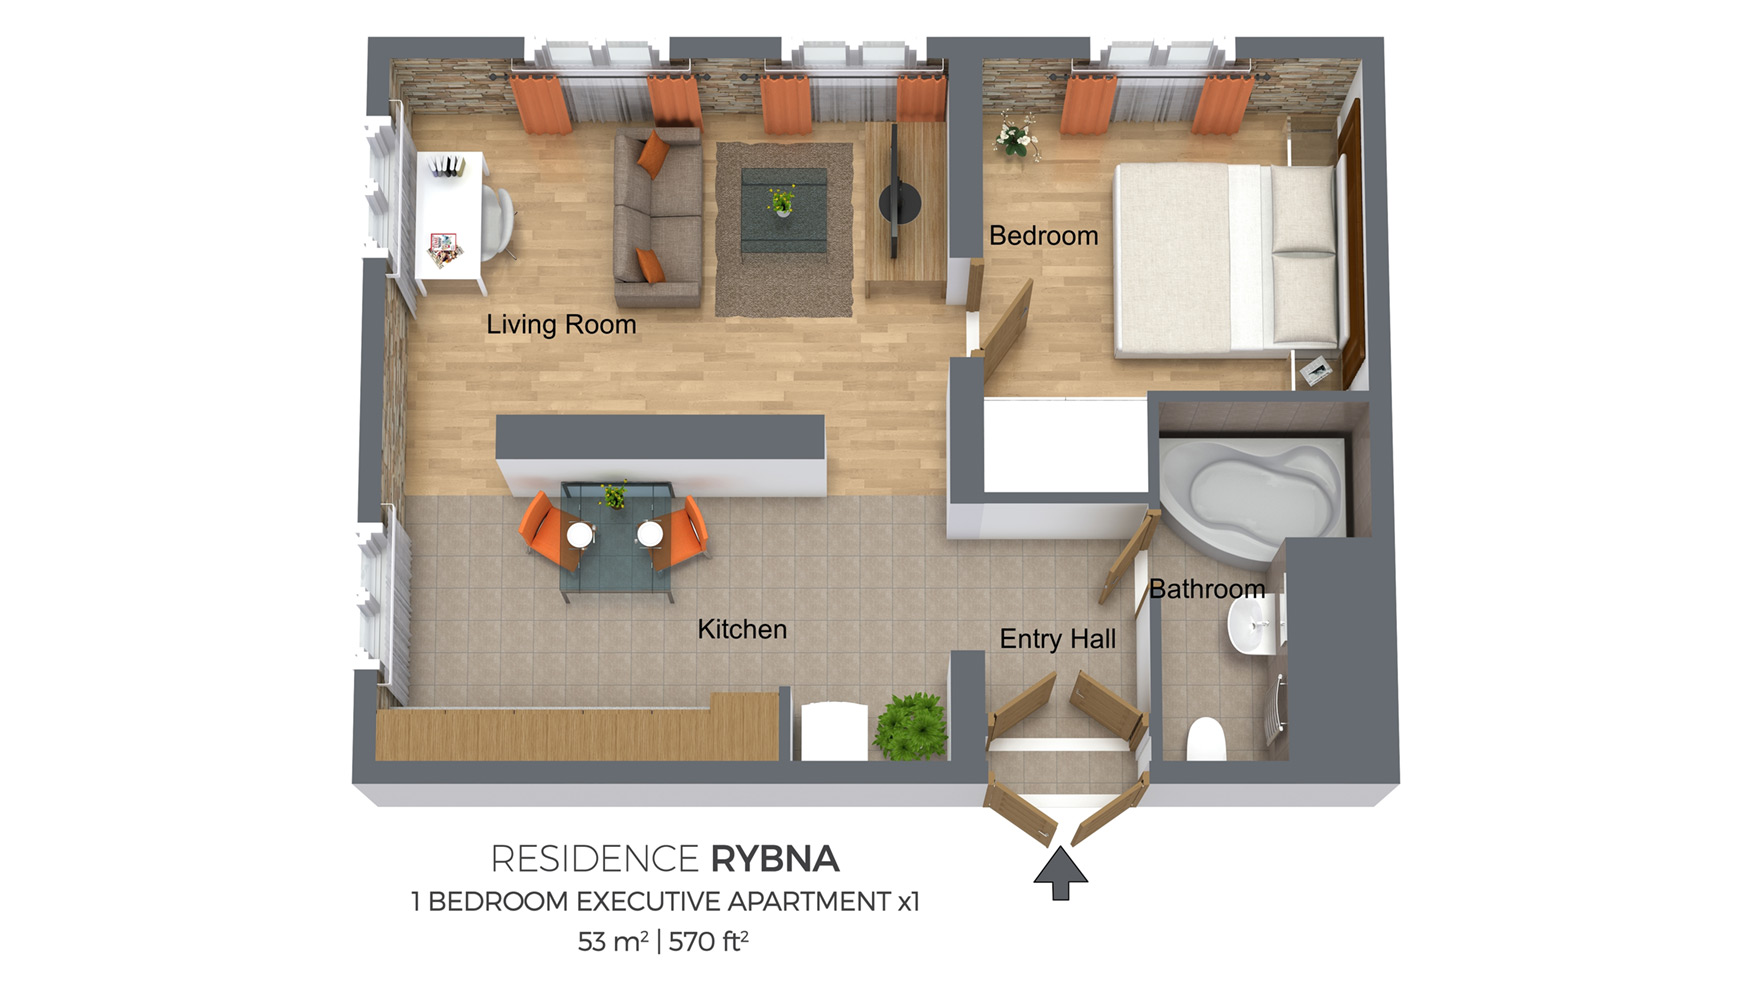 Floorplan Of Residence Rybna One Bedroom Apartment